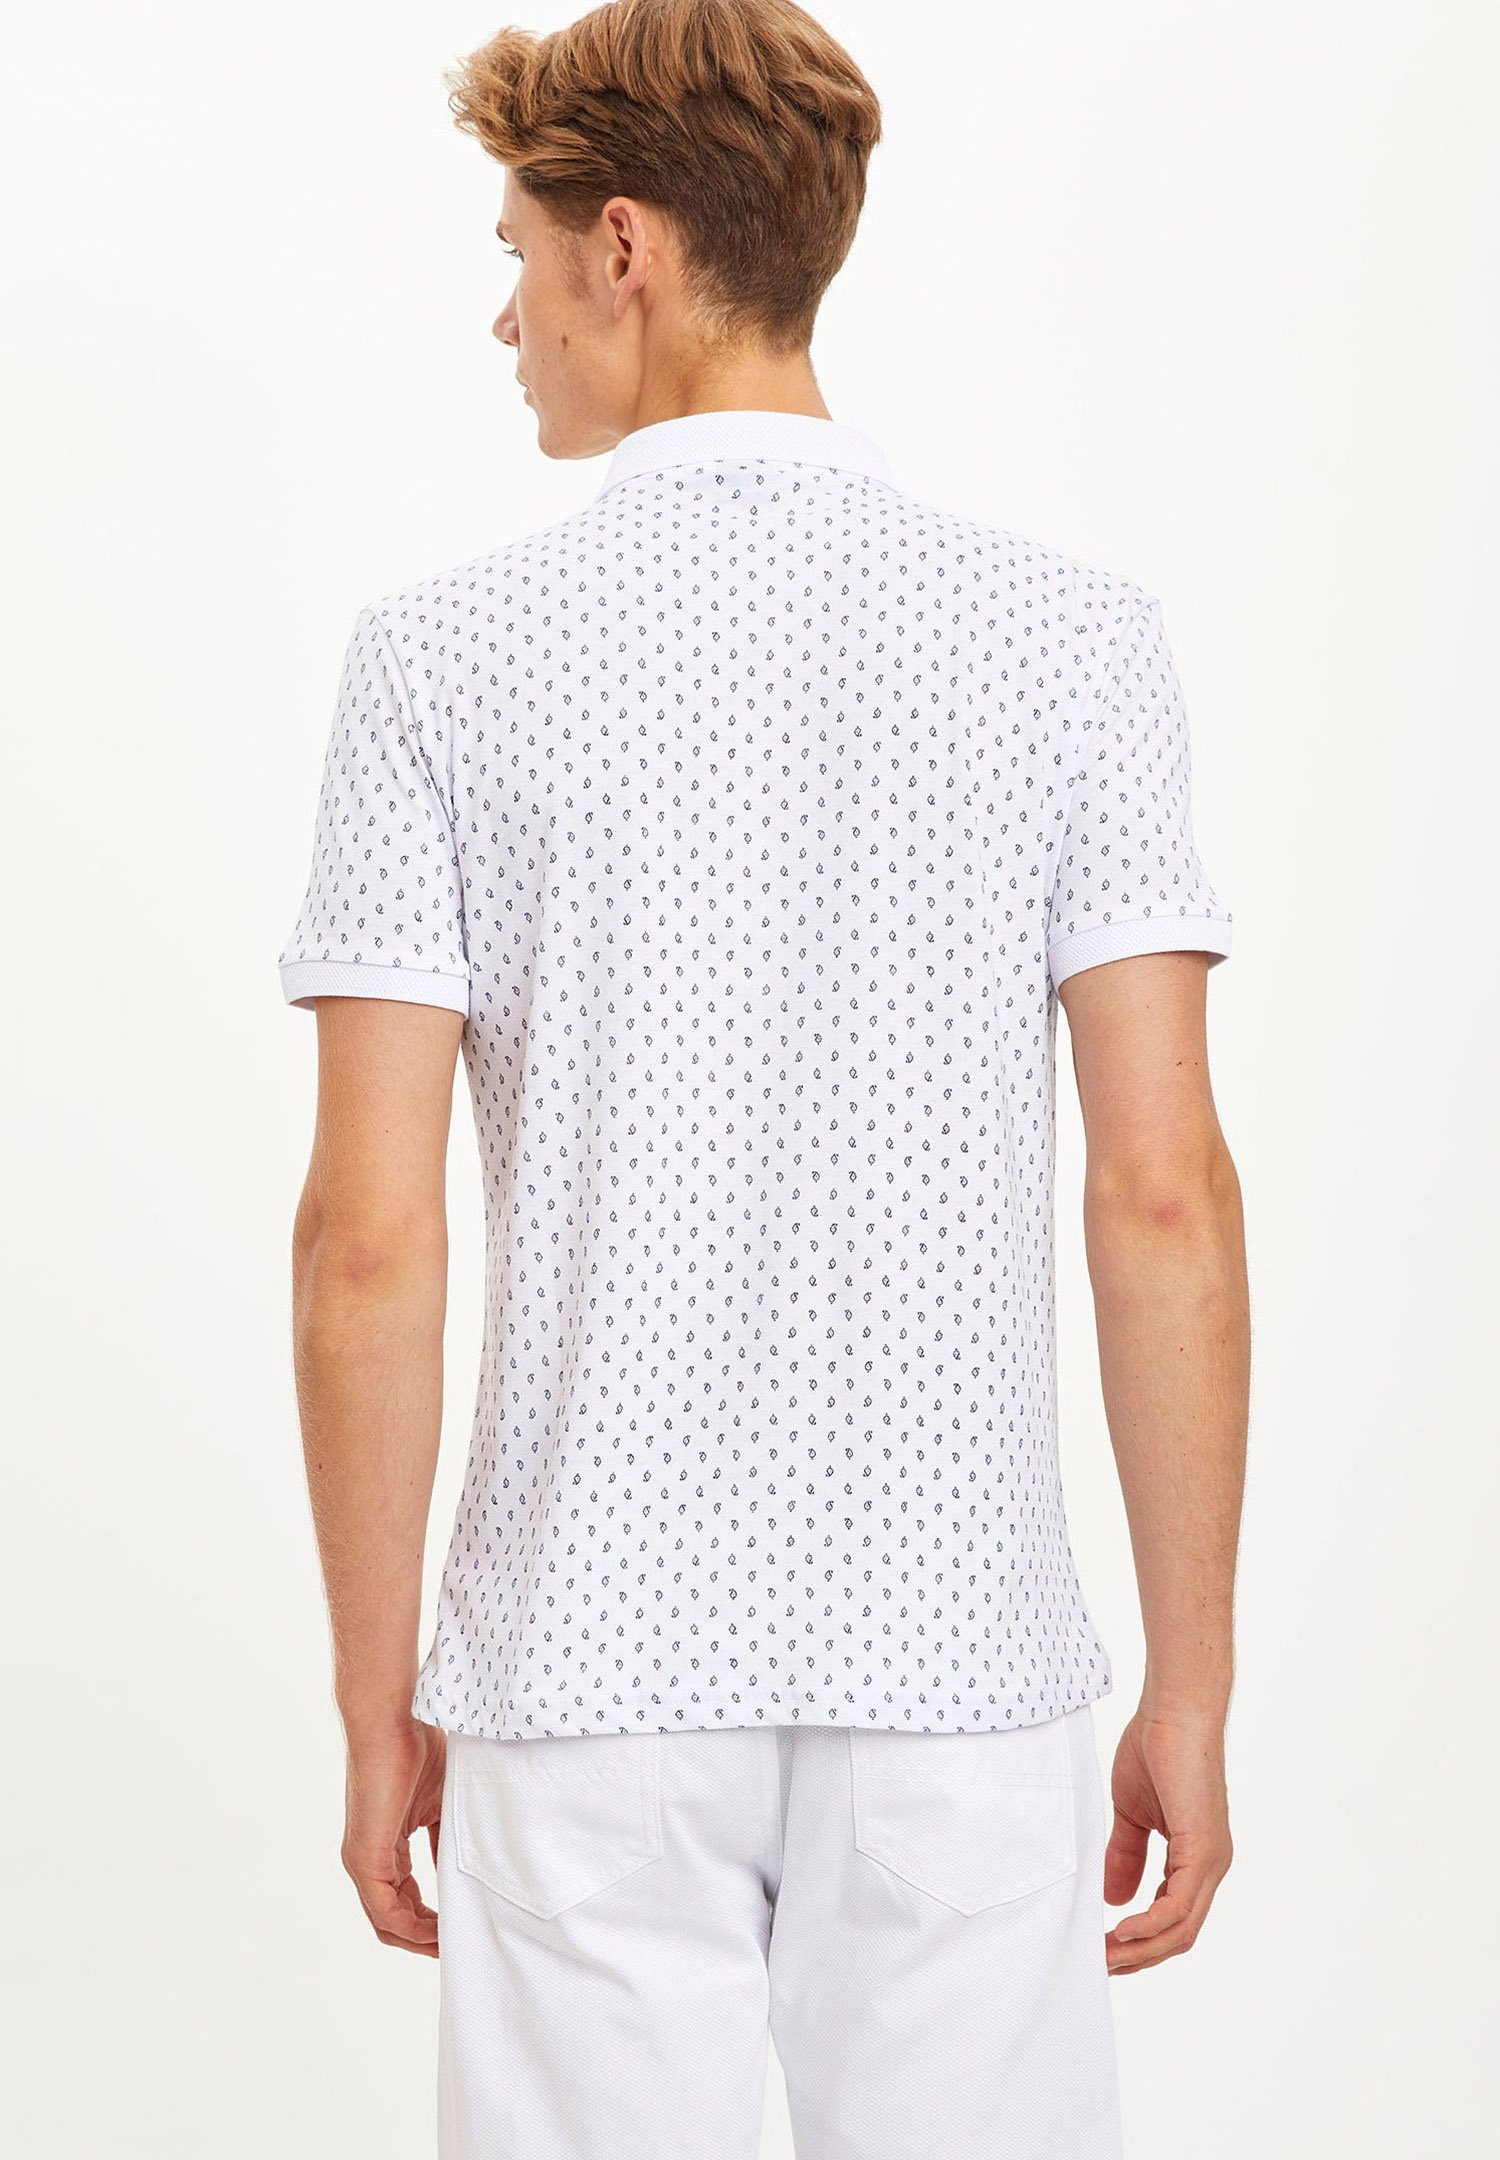 DeFacto Polo shirt - white FCYCH